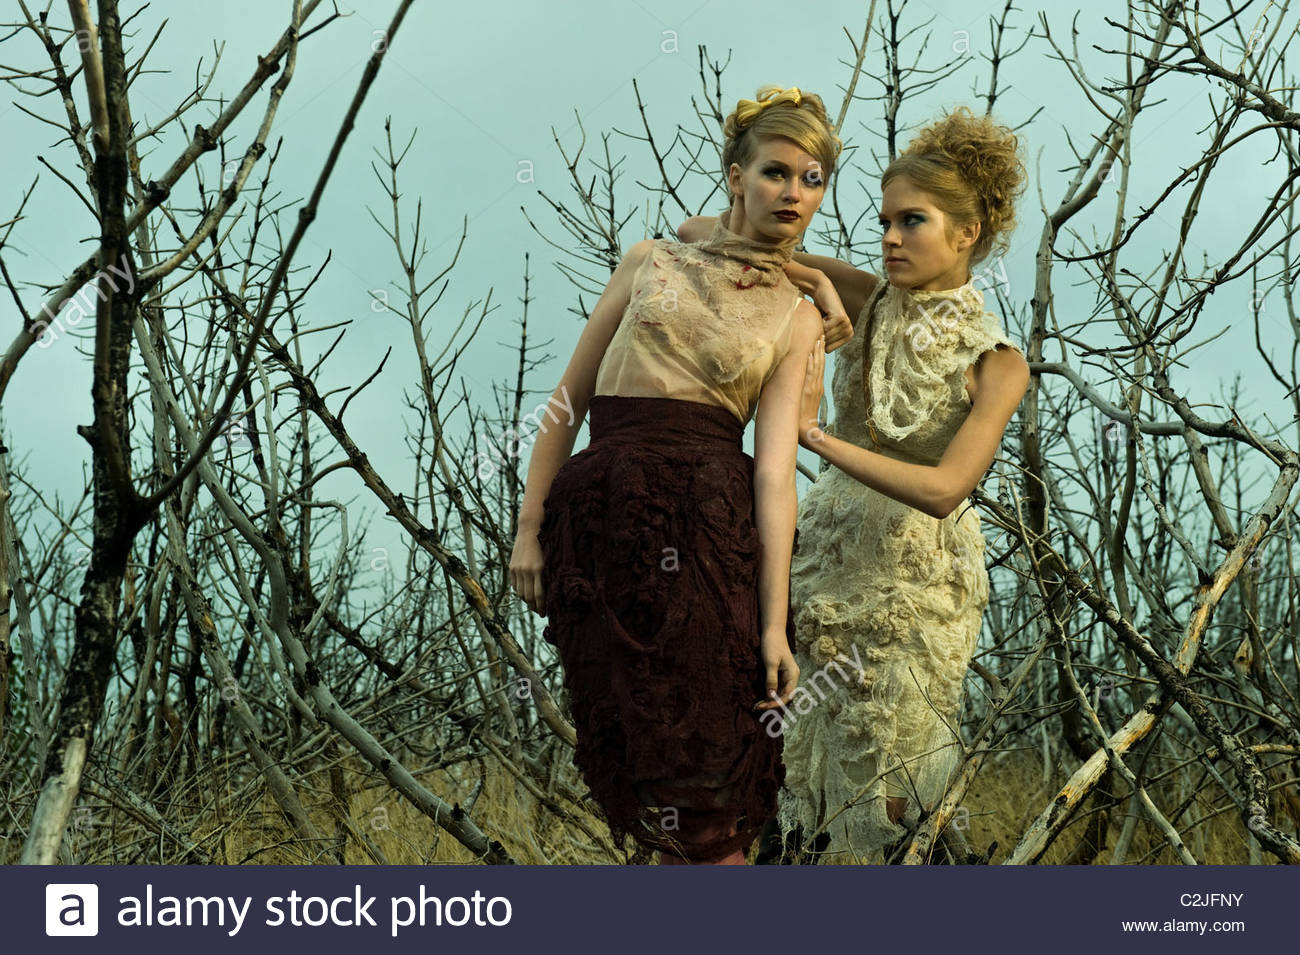 Girls are standing in a field and having disagreement - Stock Image